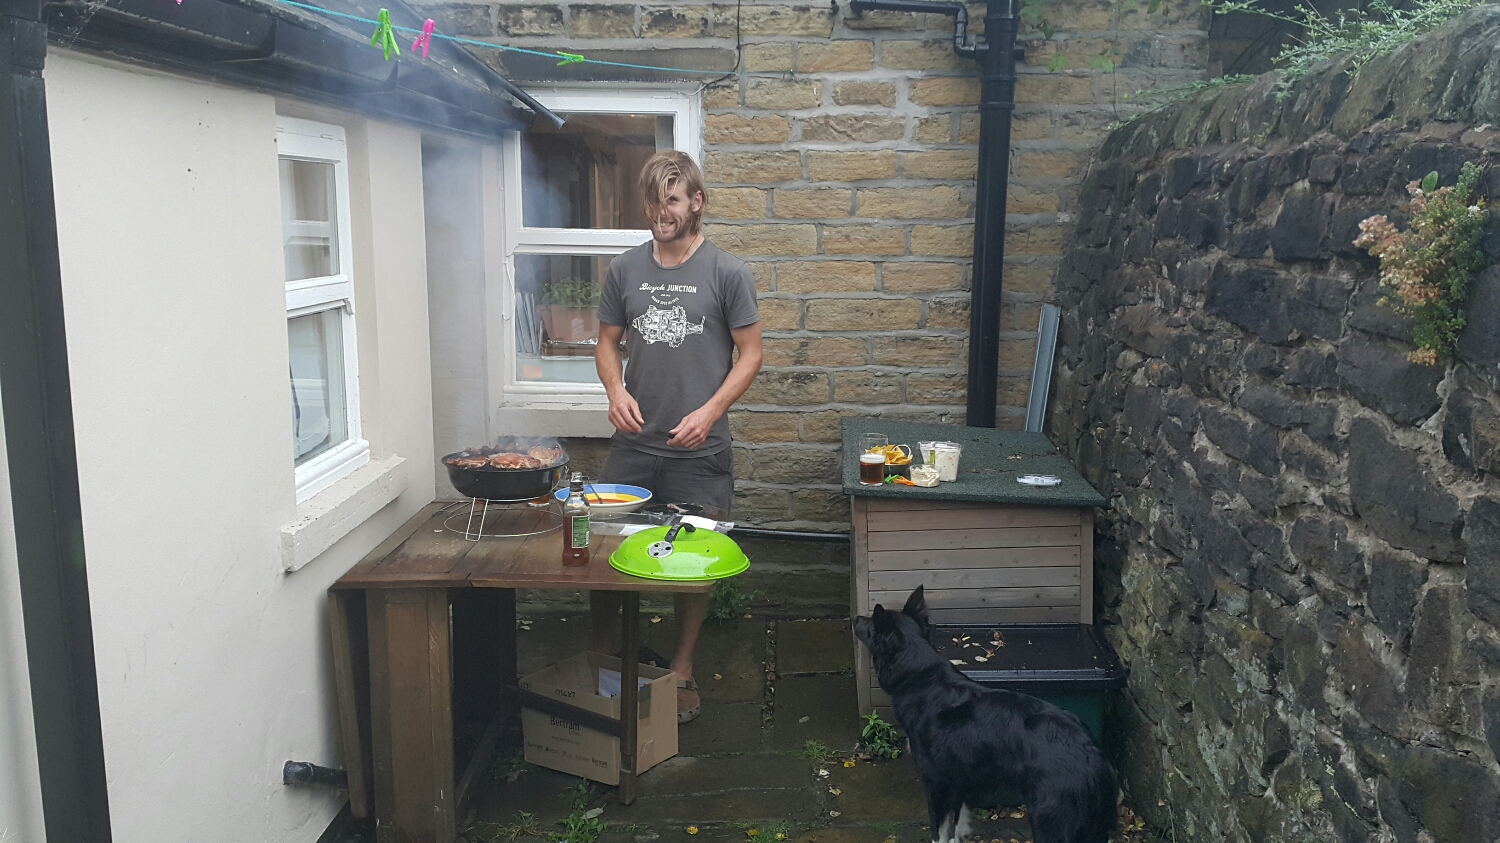 BBQ at Petes for tea when we got home.